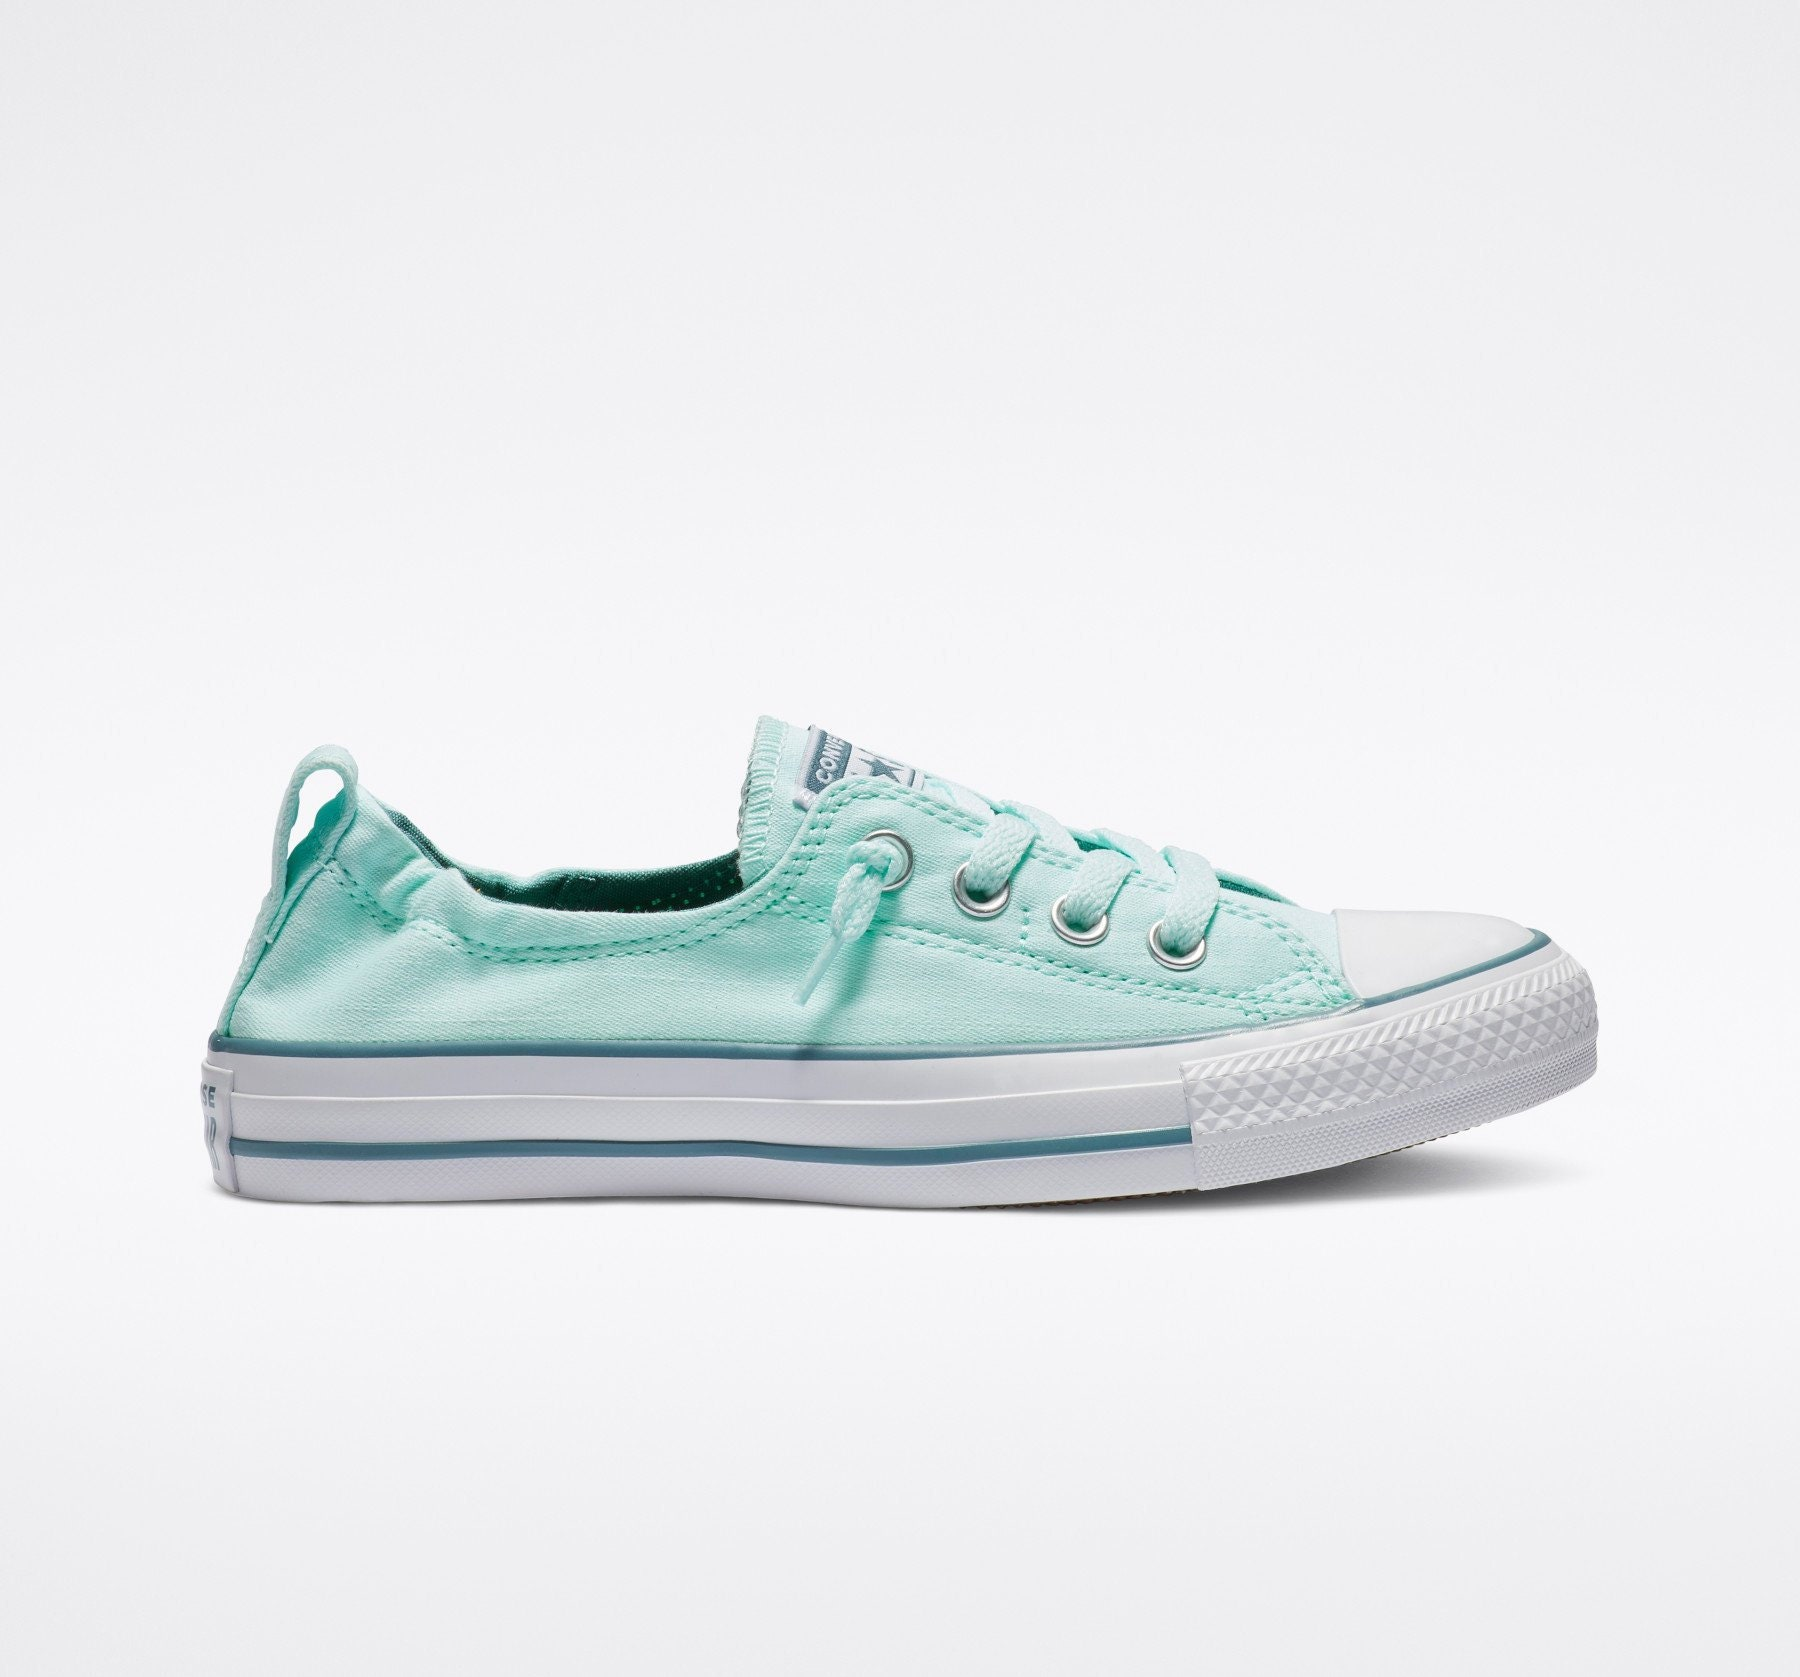 4fd635252013ba Aqua Teal Blue Converse Low Top Shoreline Turquoise Slip on Custom w  Swarovski  Crystal Rhinestone Chuck Taylor Bride Wedding Sneakers Shoes